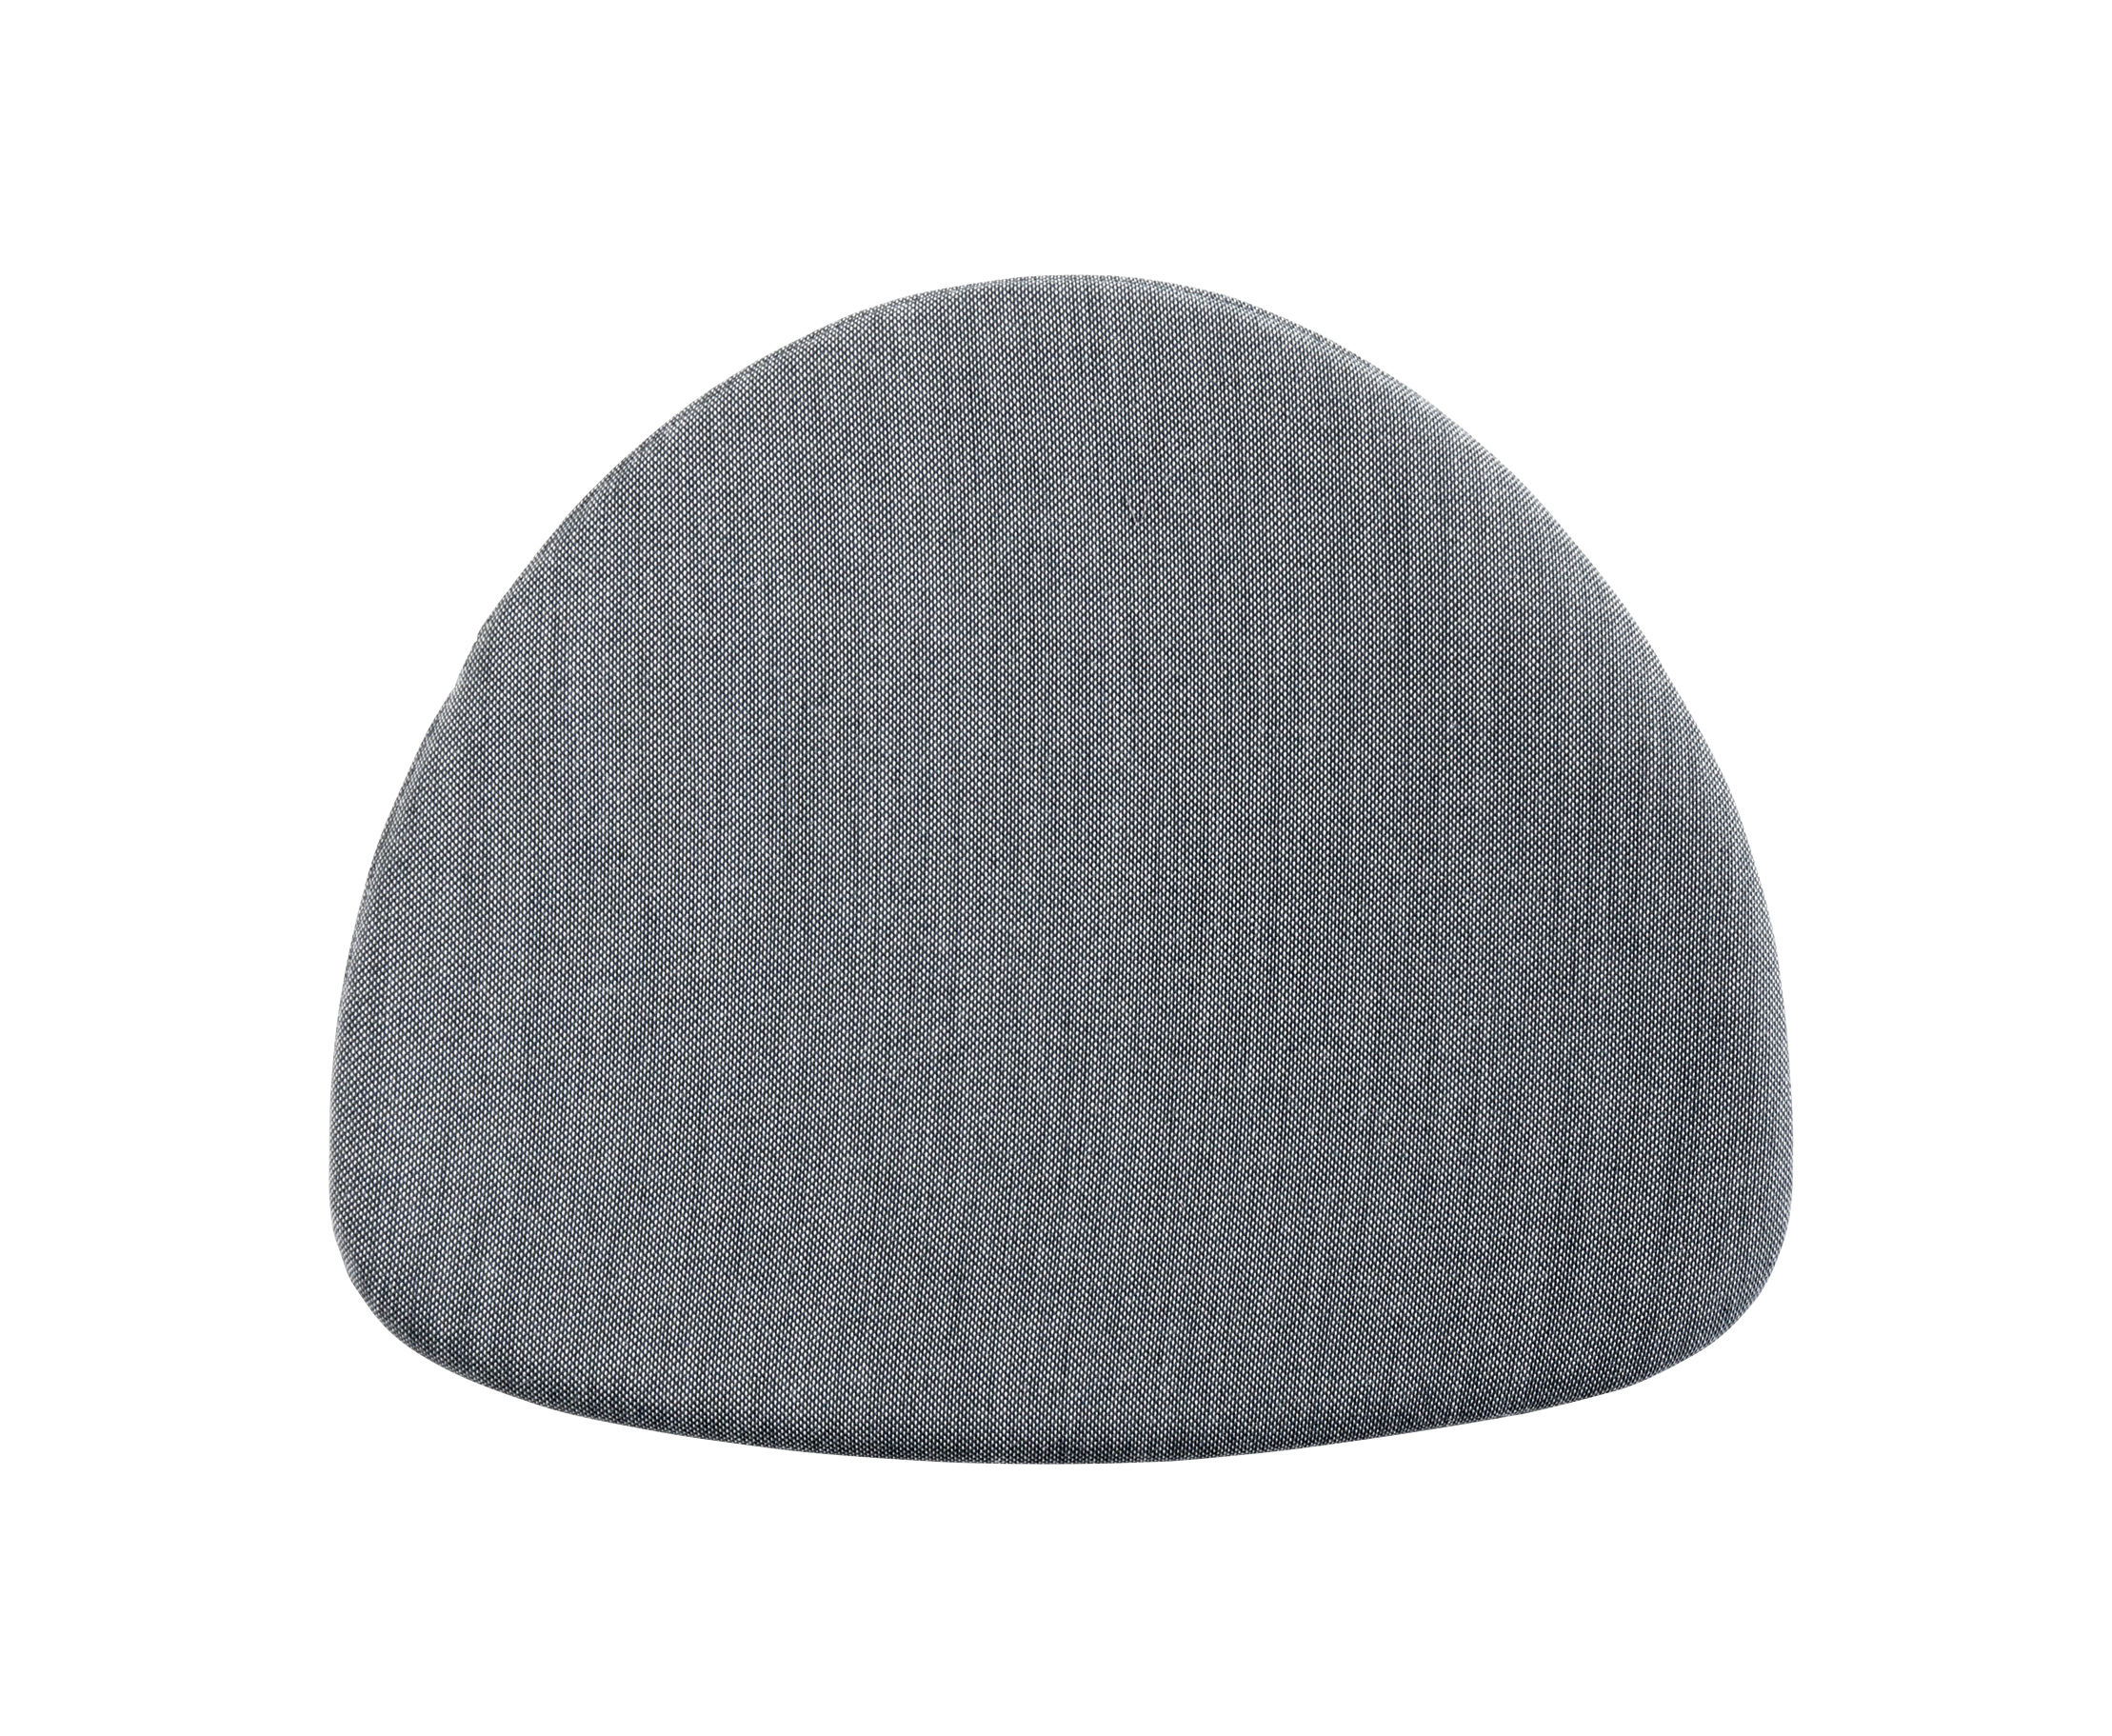 Decoration - Cushions & Poufs - Seat cushion - / For J104 chair by Hay - Dark grey - Tissu Surface